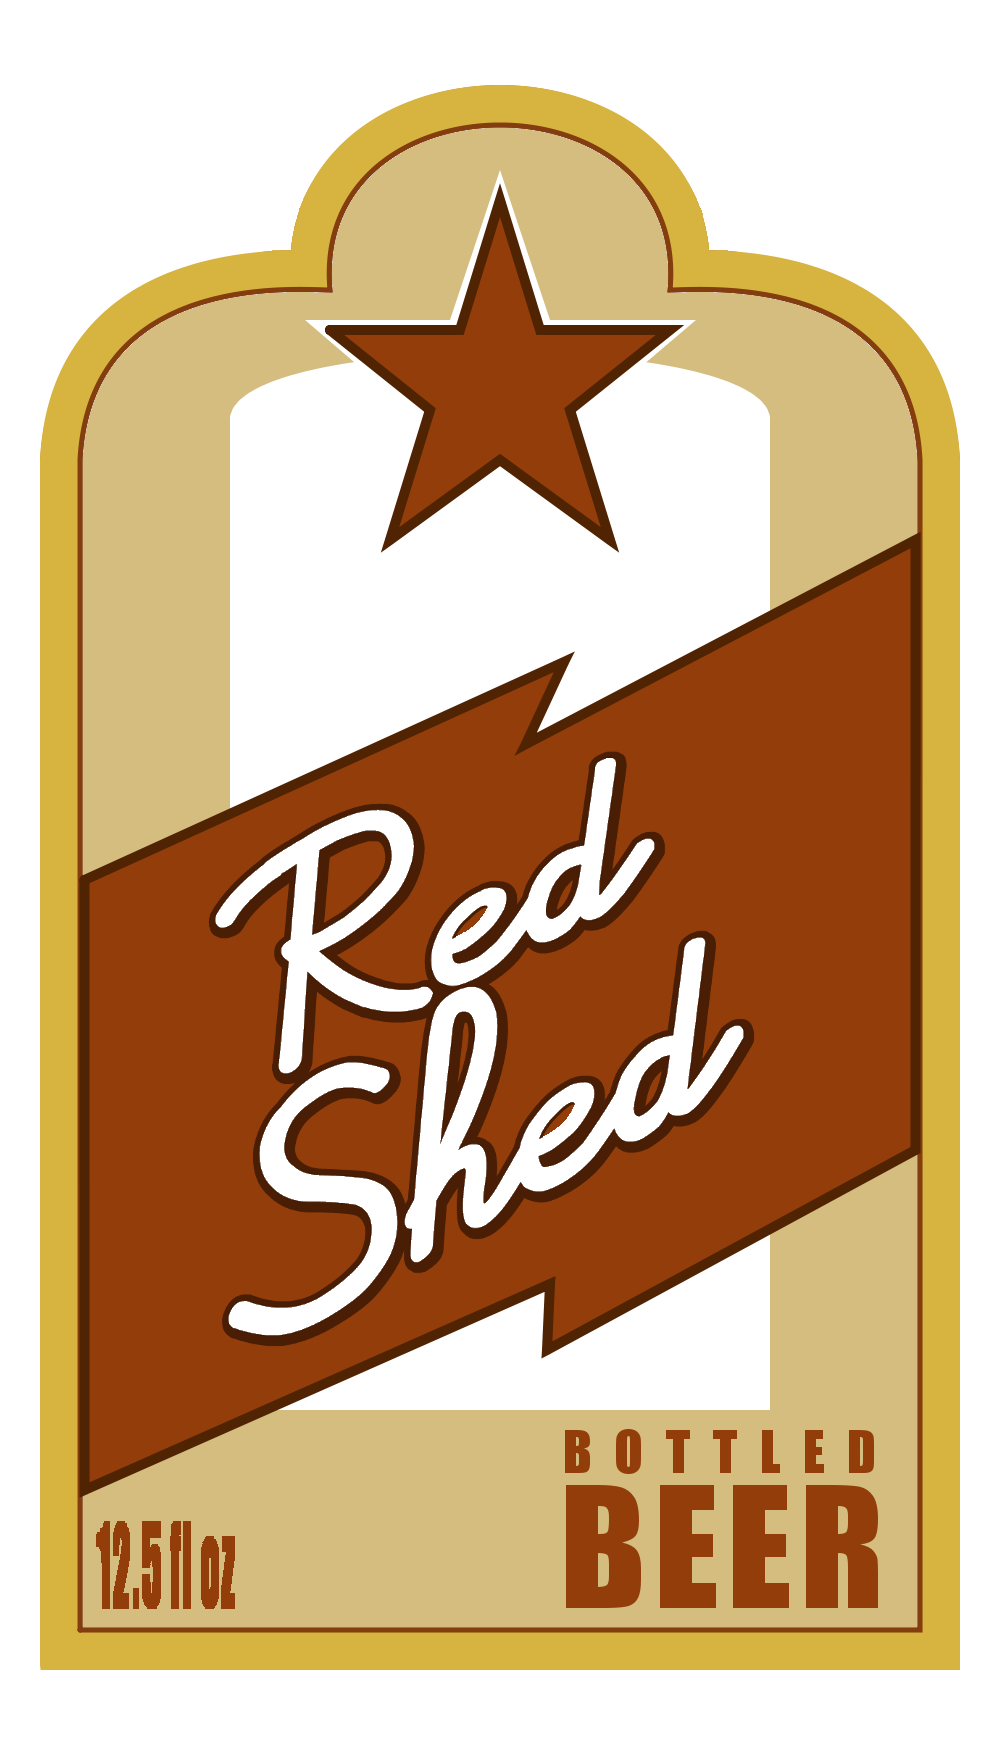 RED Shed Beer by borzou on DeviantArt